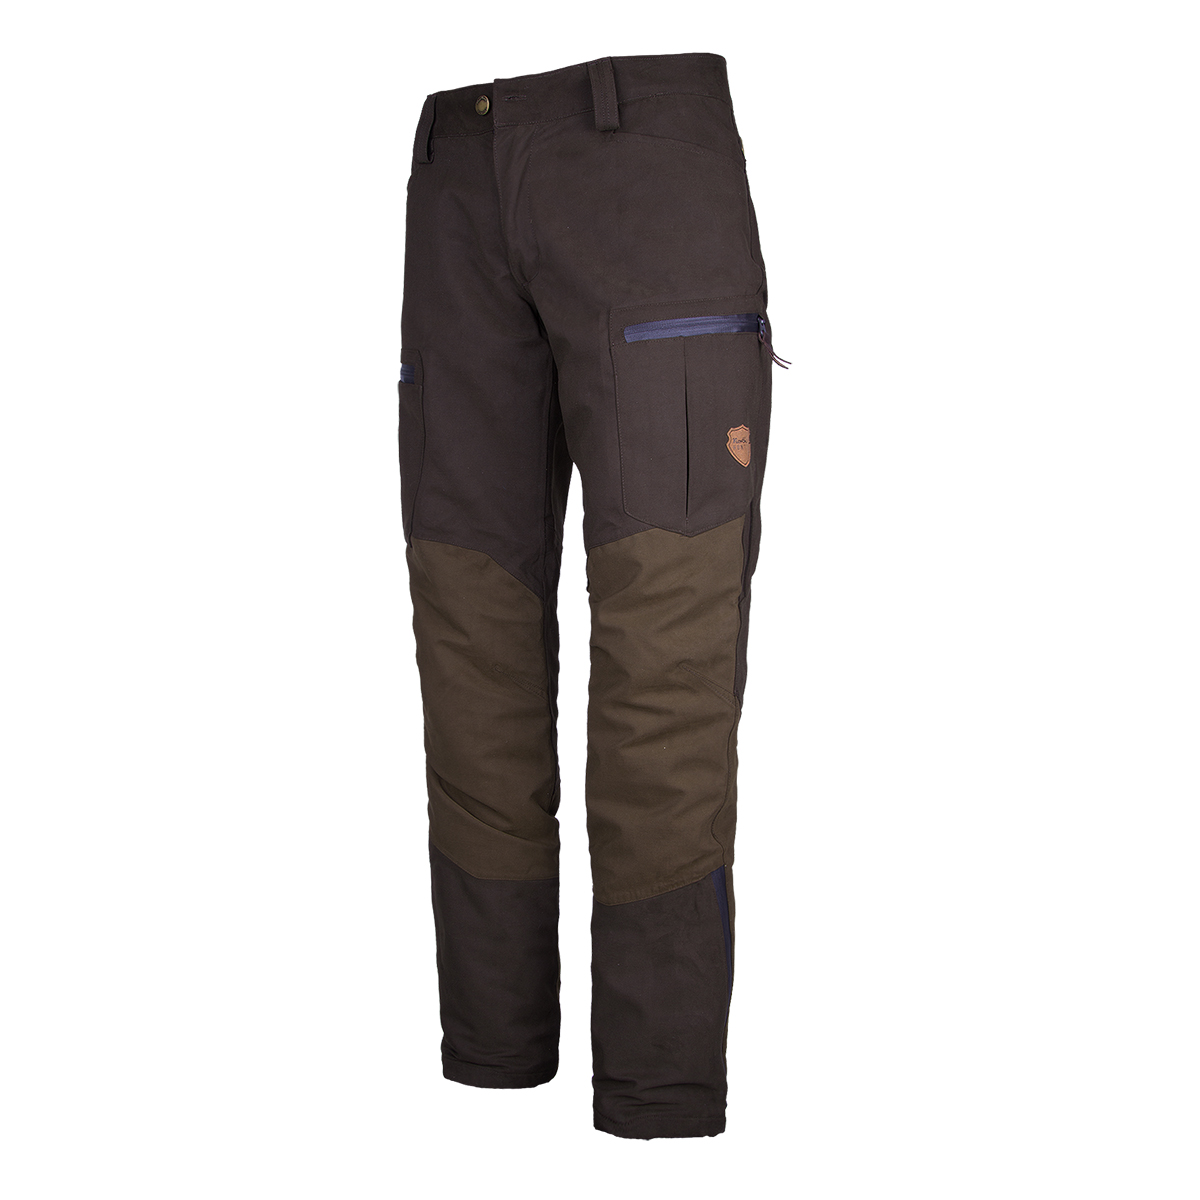 Northern Hunting Damenhose Tora Liv im Pareyshop